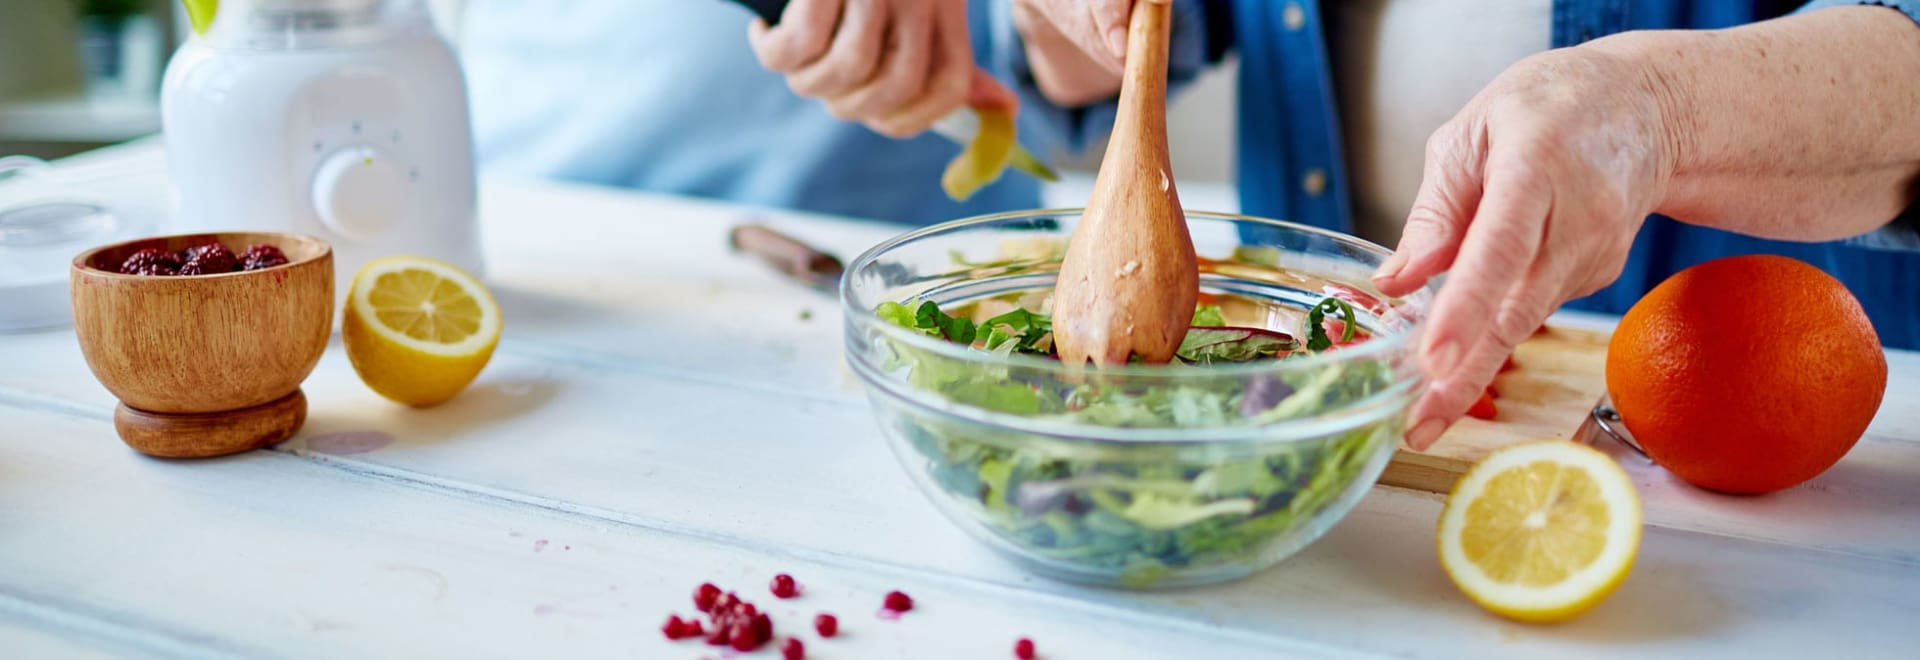 Woman making a salad. Healthy eating is essential for losing weight.